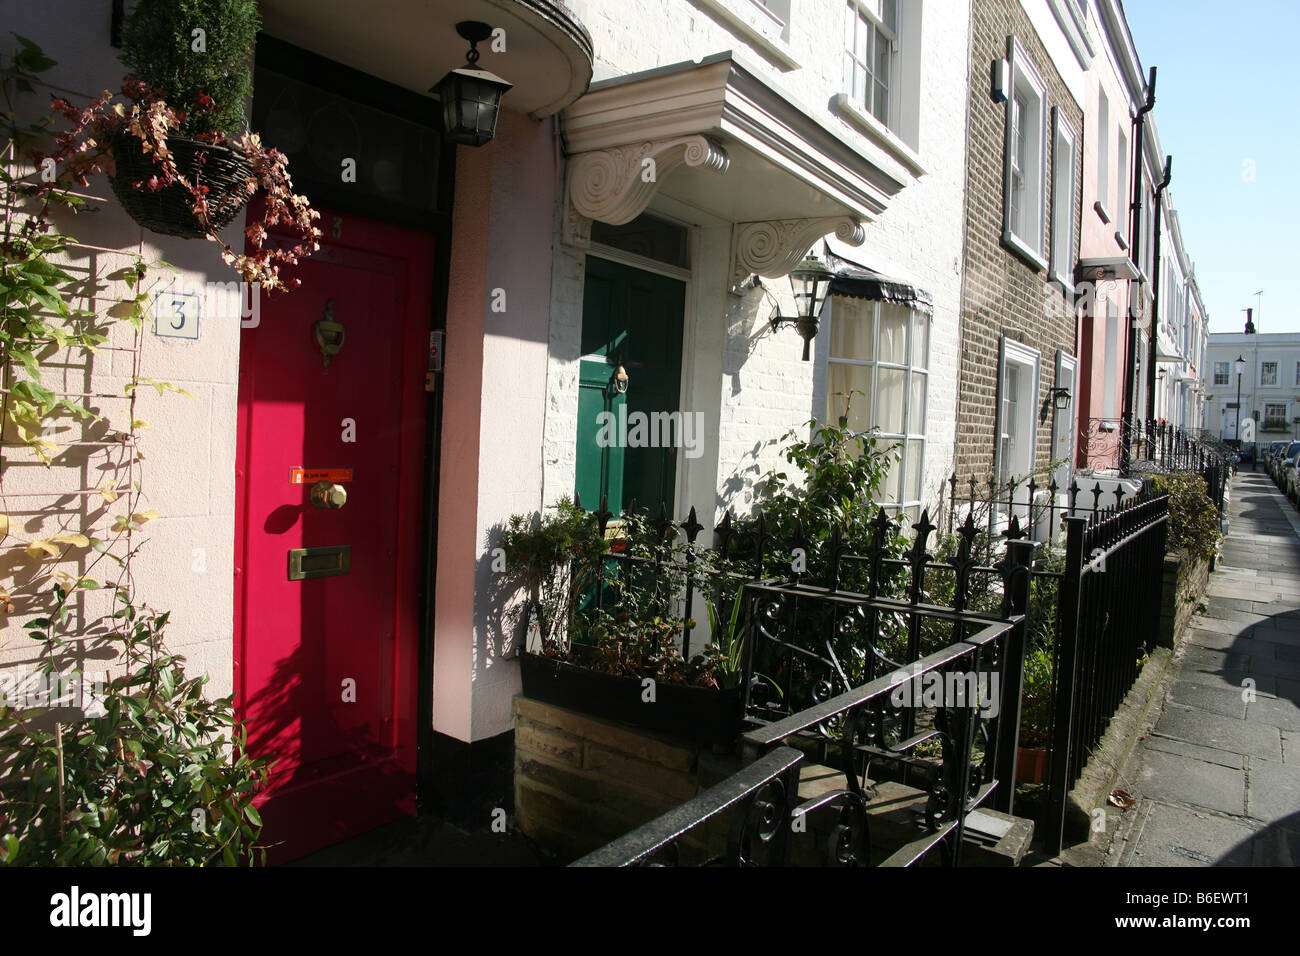 Terraced houses in Notting Hill Gate, London - Stock Image